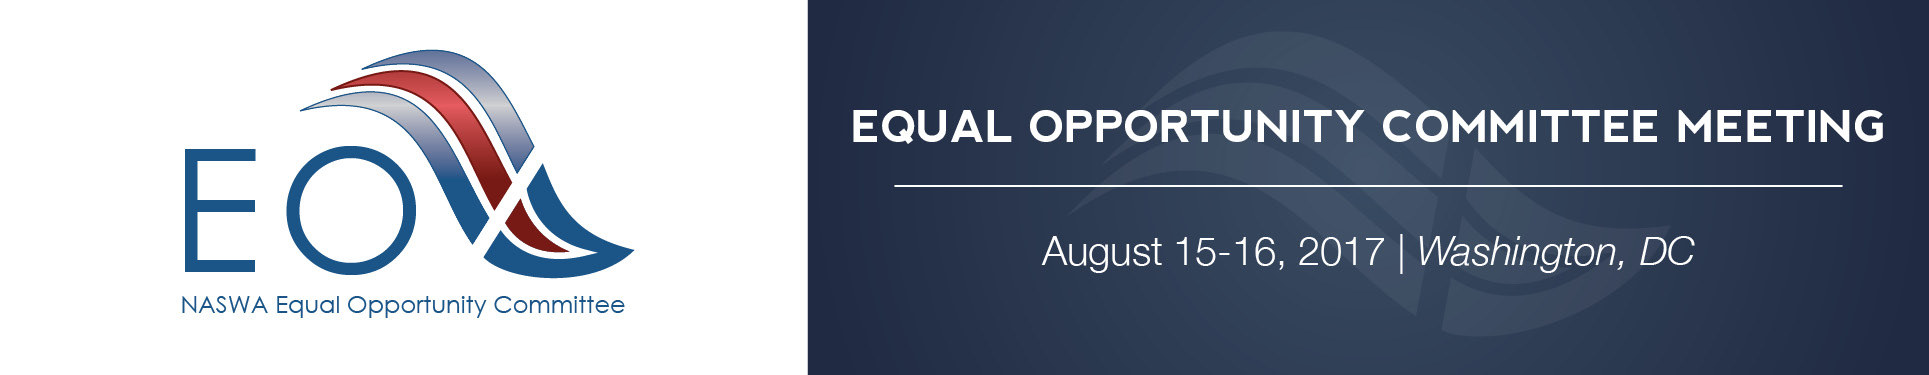 Equal Opportunity Committee Meeting (Aug 2017)